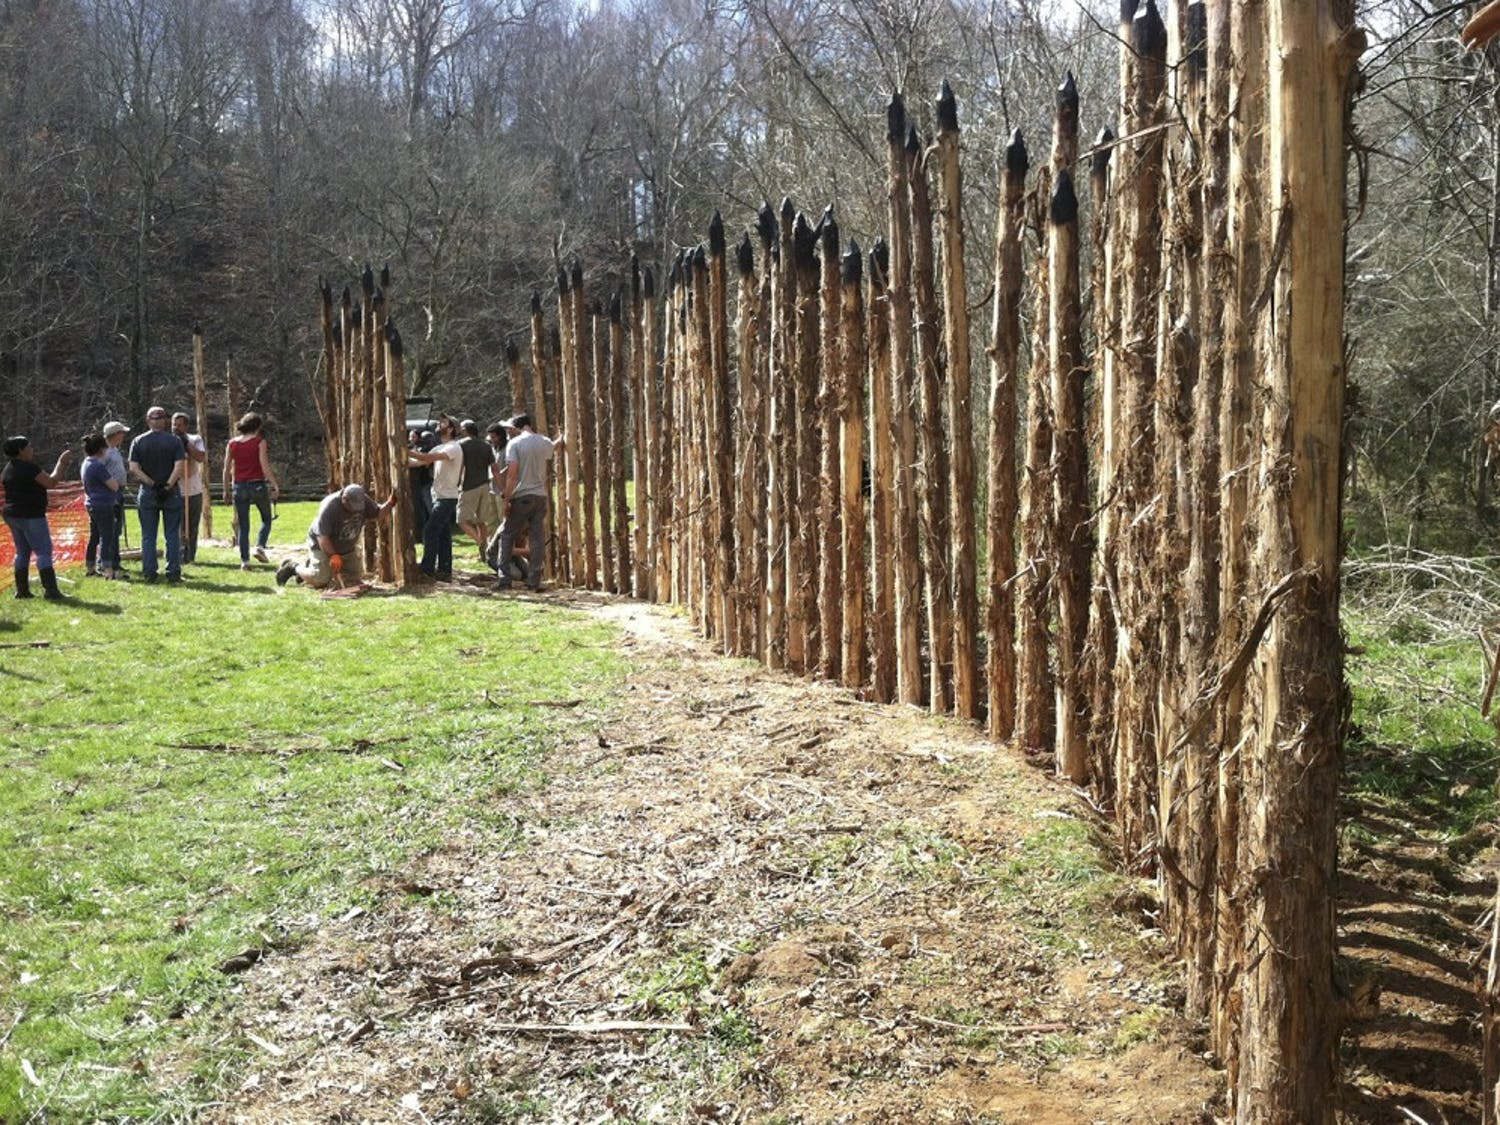 Volunteers help raise 100 cedar poles this past Saturday at the new Occaneechi Band of the Saponi Nation Replica Village in Hillsborough. 400 cedar poles will eventually surround the site by this summer. Photo Courtesy of Holly Reid.